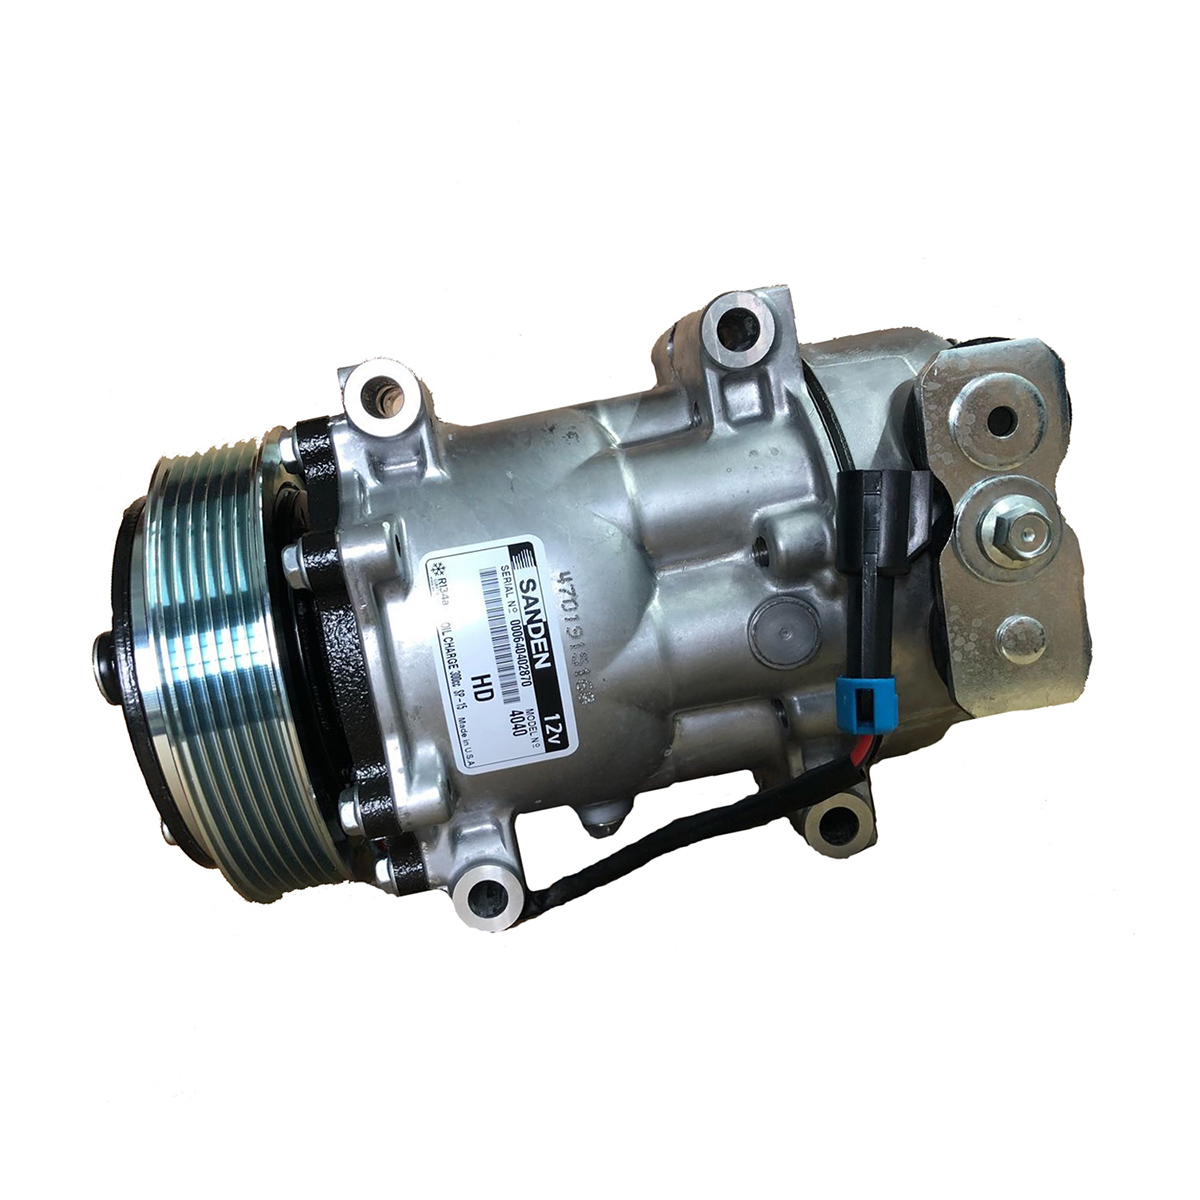 ORIGINAL SANDEN A/C Compressor With Clutch, 4040